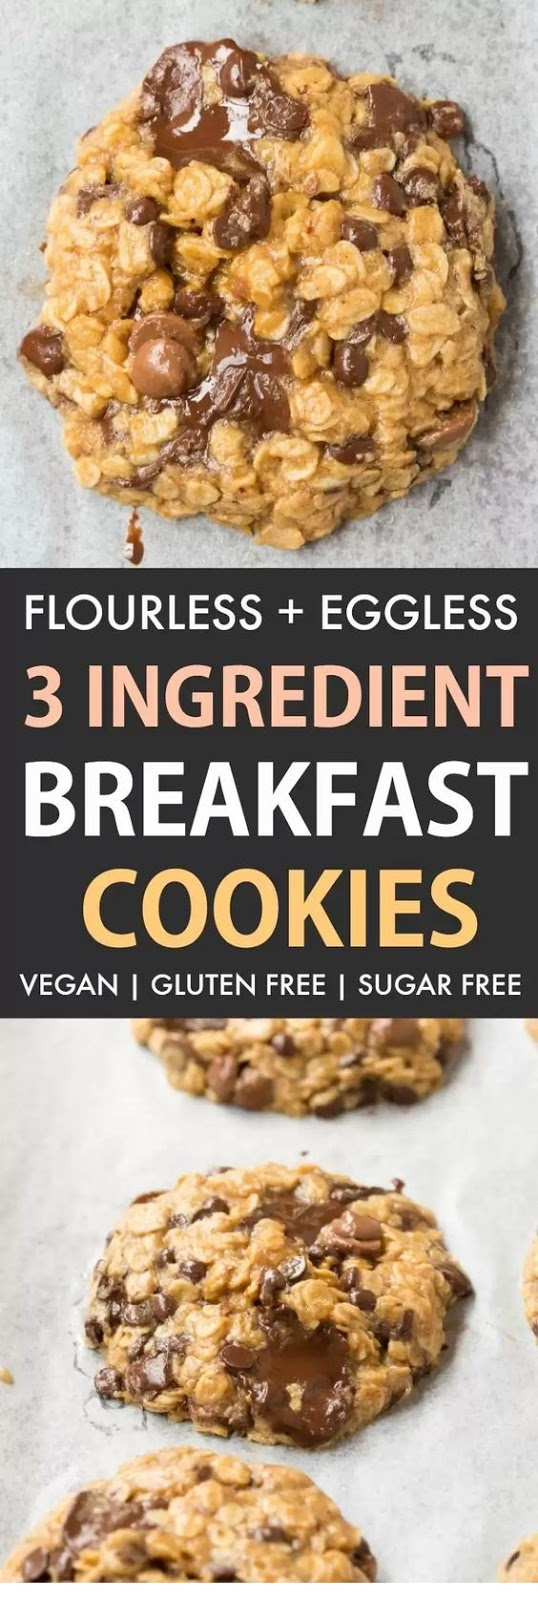 3 Ingredient Oatmeal Breakfast Cookies (Vegan, Gluten Free)